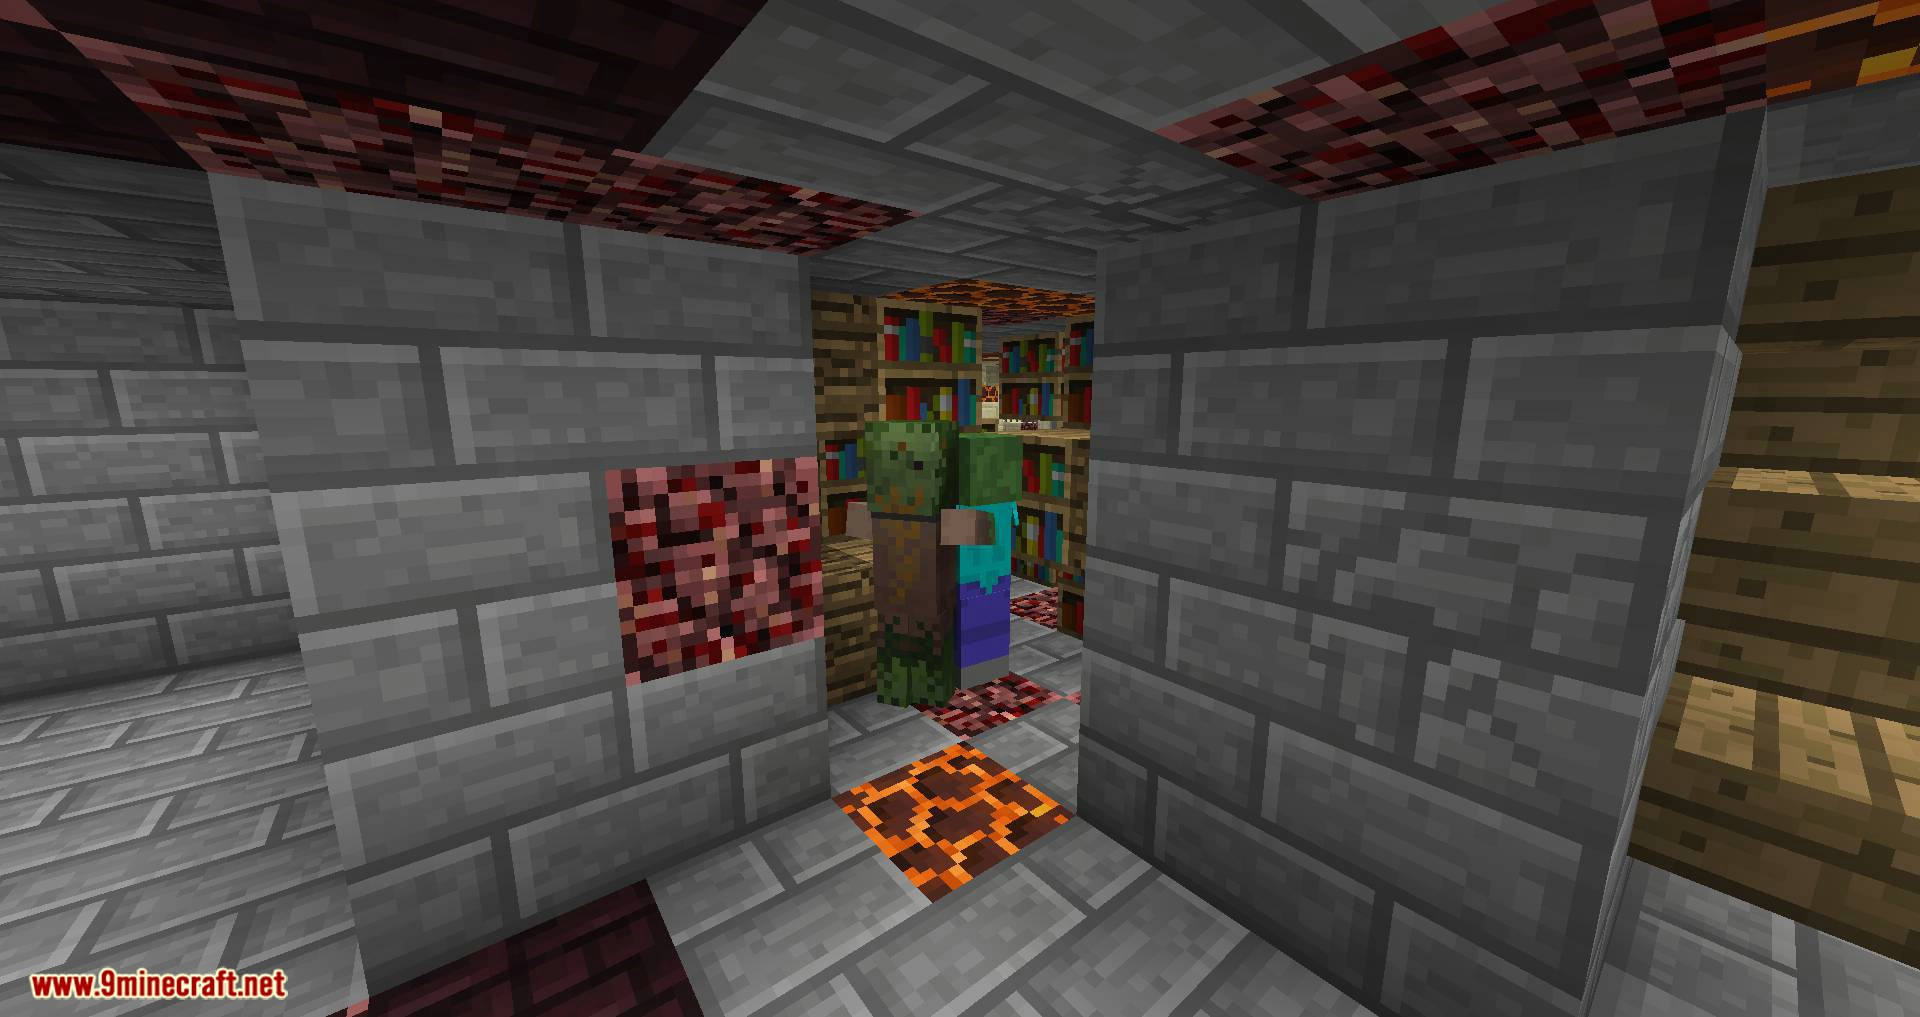 Wesley_s Roguelike Dungeons mod for minecraft 07